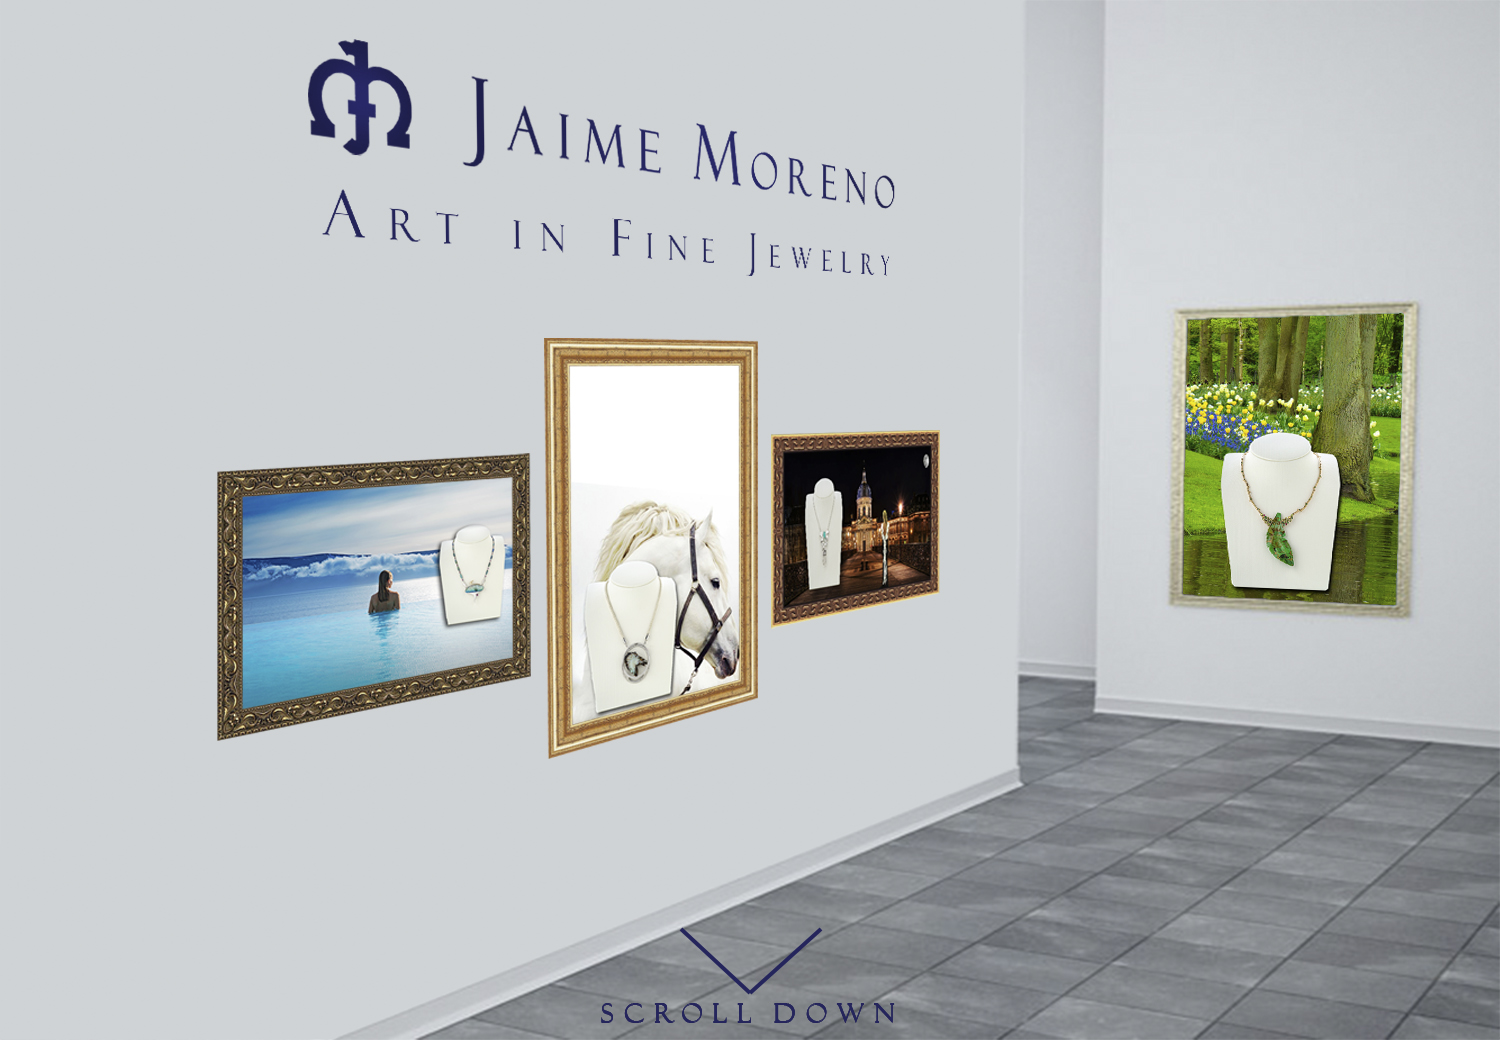 Jaime-Moreno-Art-in-Jewelry-Spanish-Luxury-Fine-Jewelry